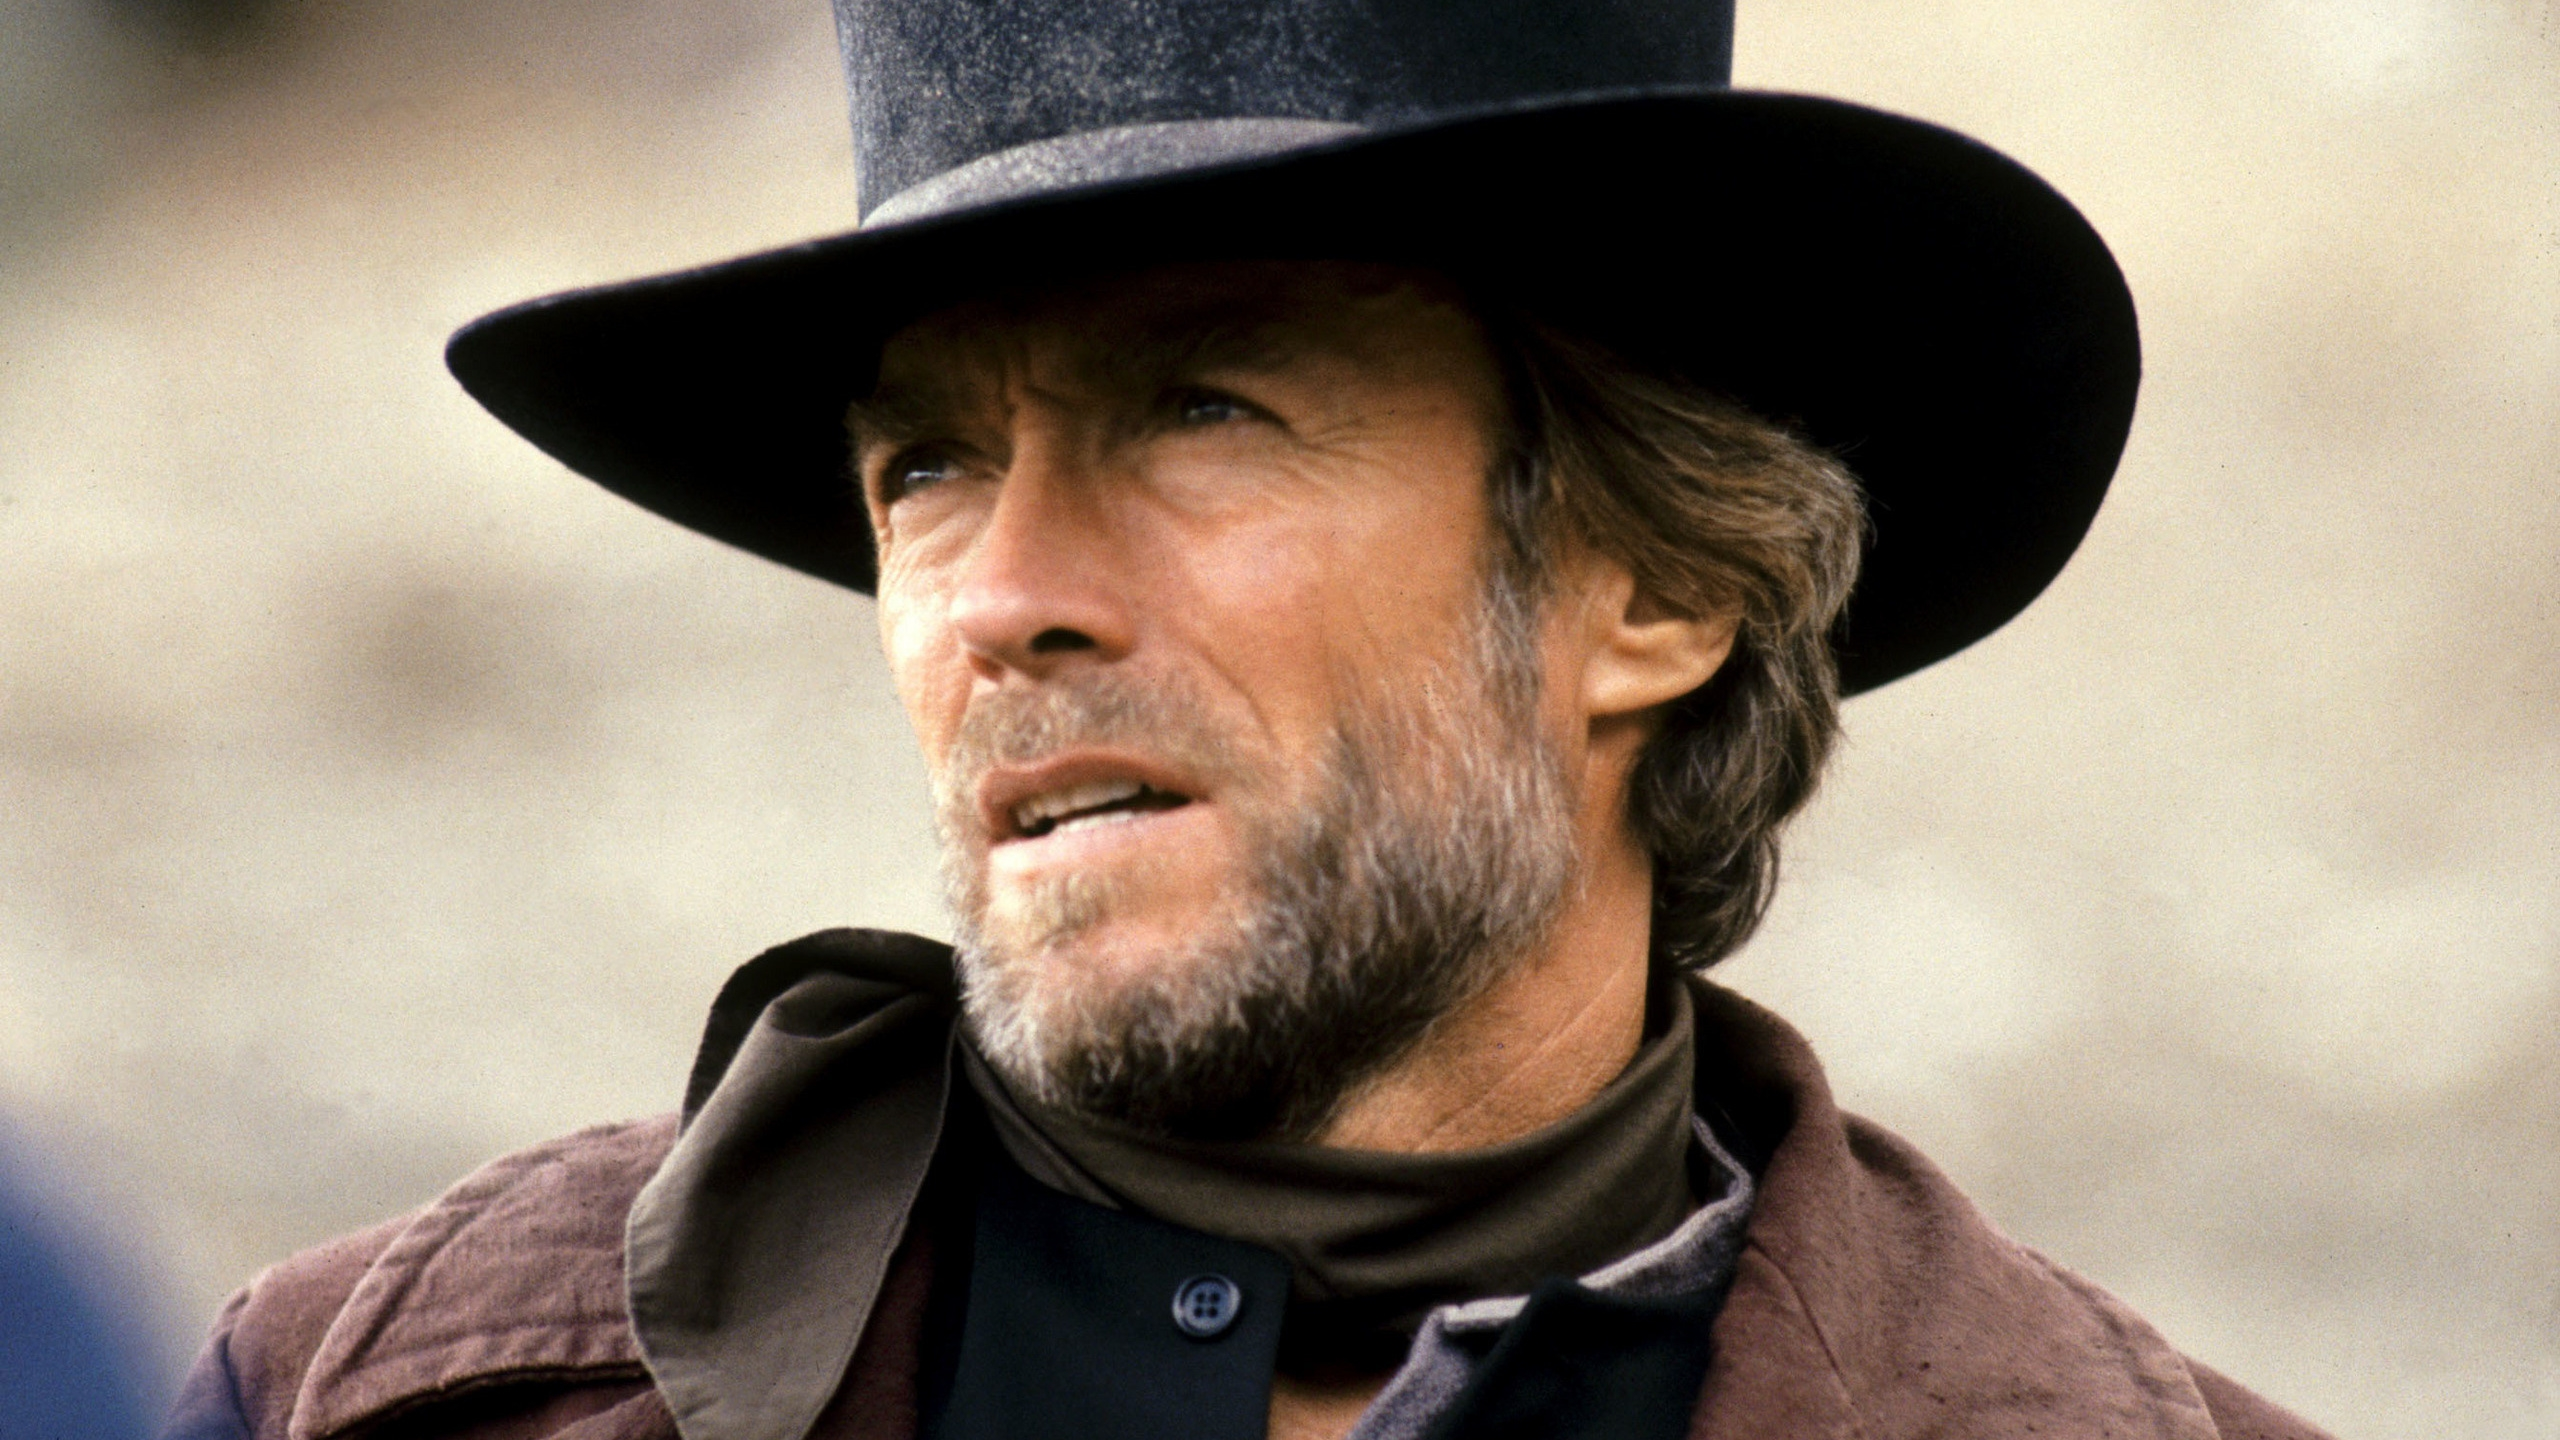 Clint Eastwood Vintage for 2560x1440 HDTV resolution